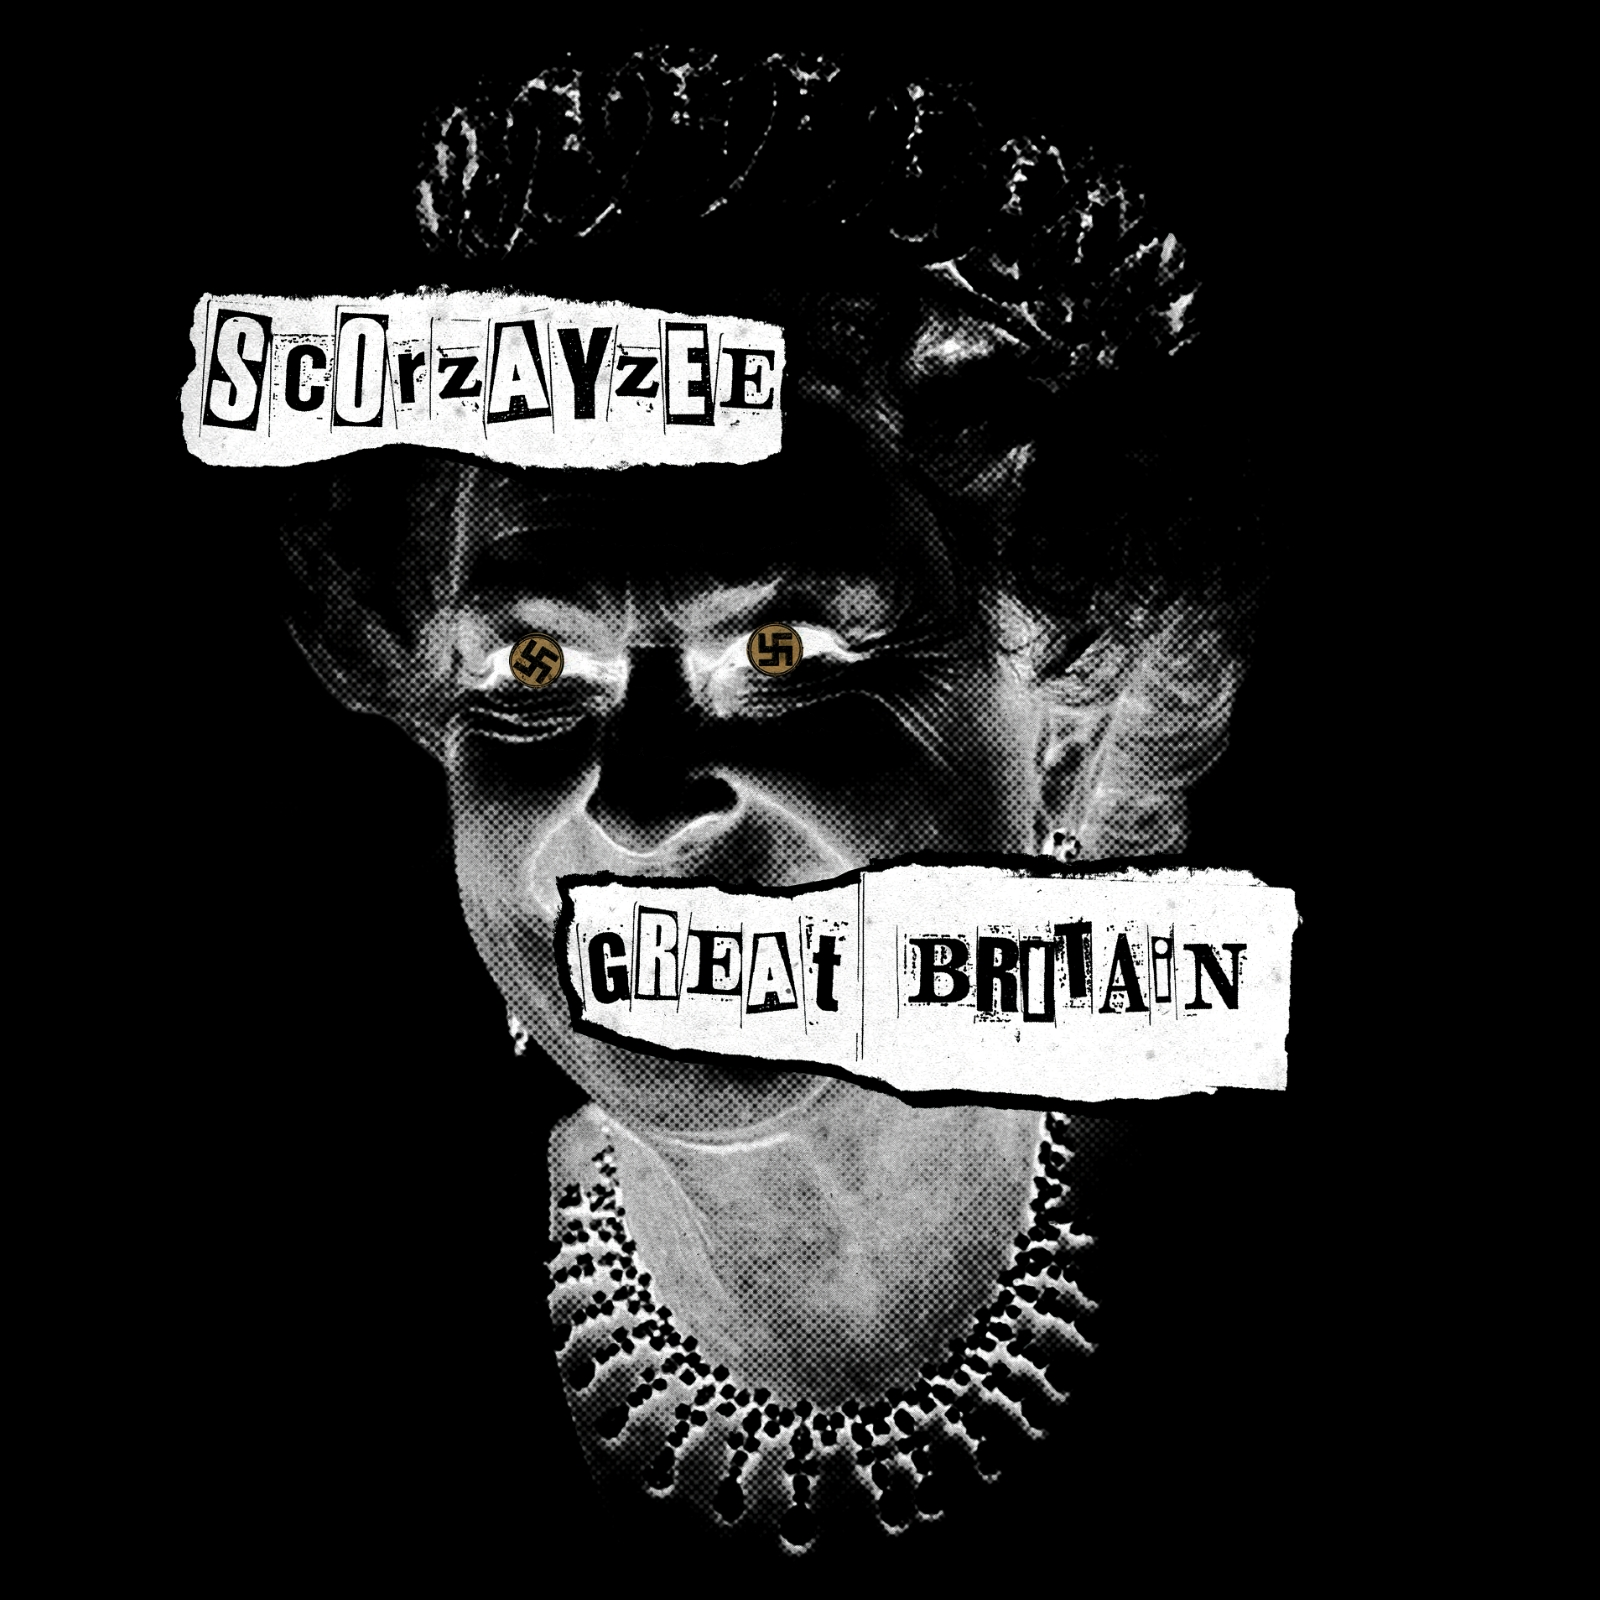 Buy Online Scorzayzee - Great Britain Deluxe 'Windsor's Fallen' Ltd Edition Gold Vinyl and Sticker)